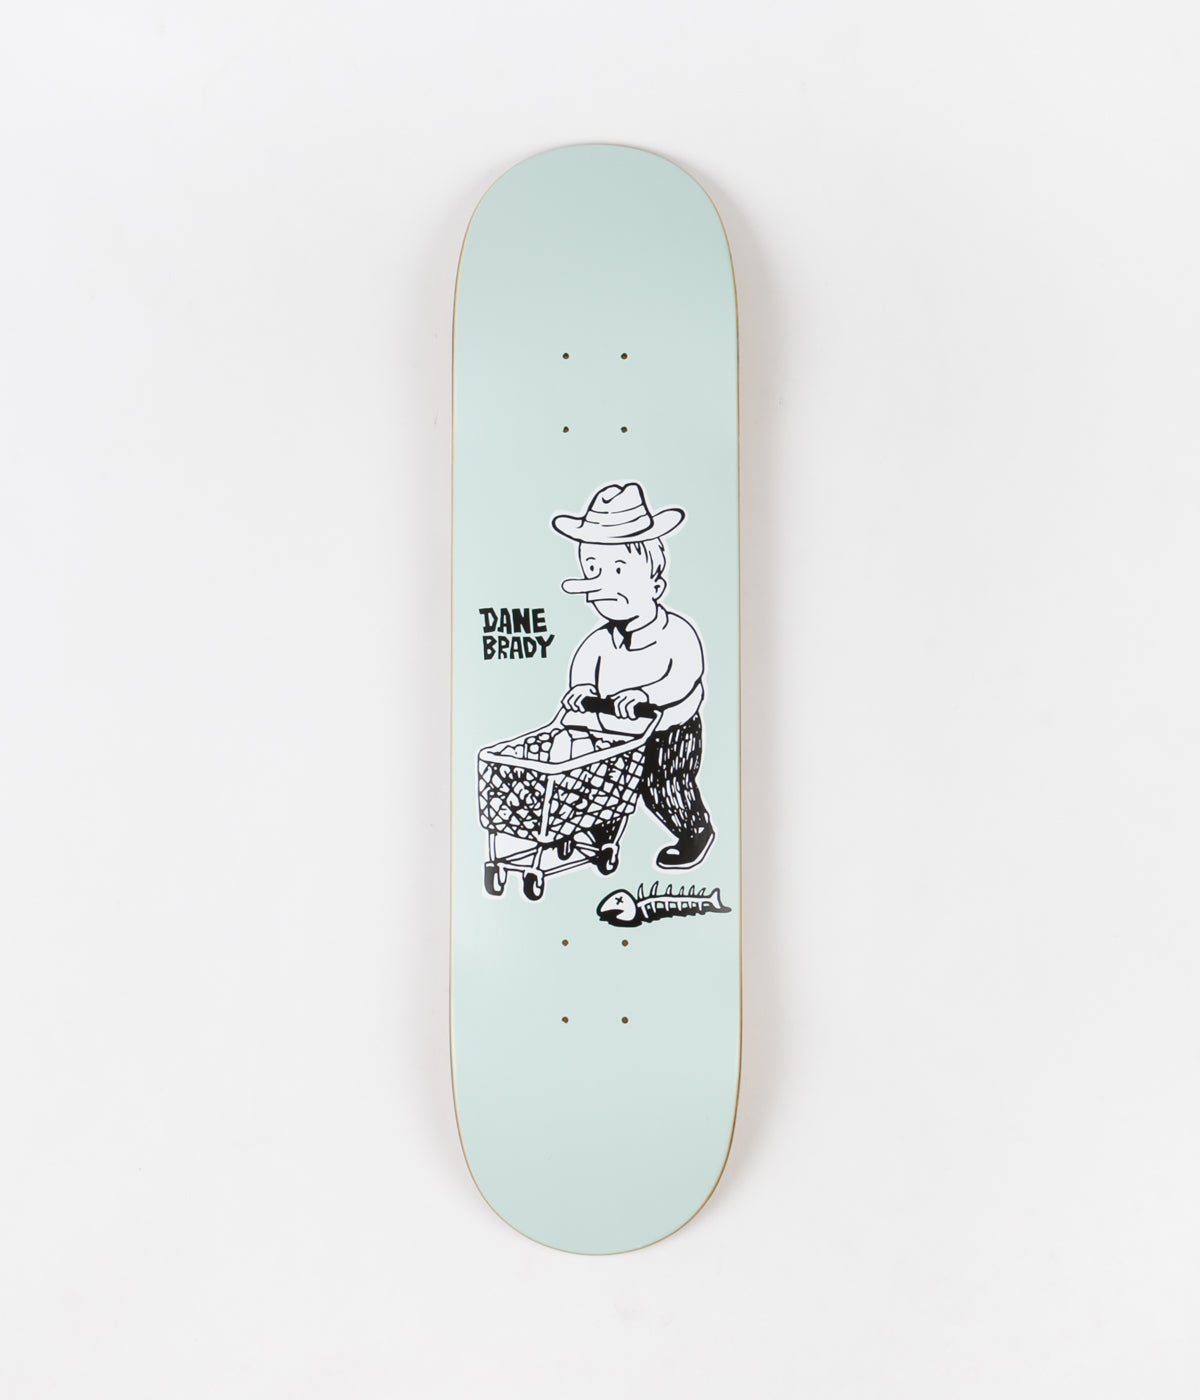 Polar Dane Brady Shopping Spree Deck - Grey Green - 8""